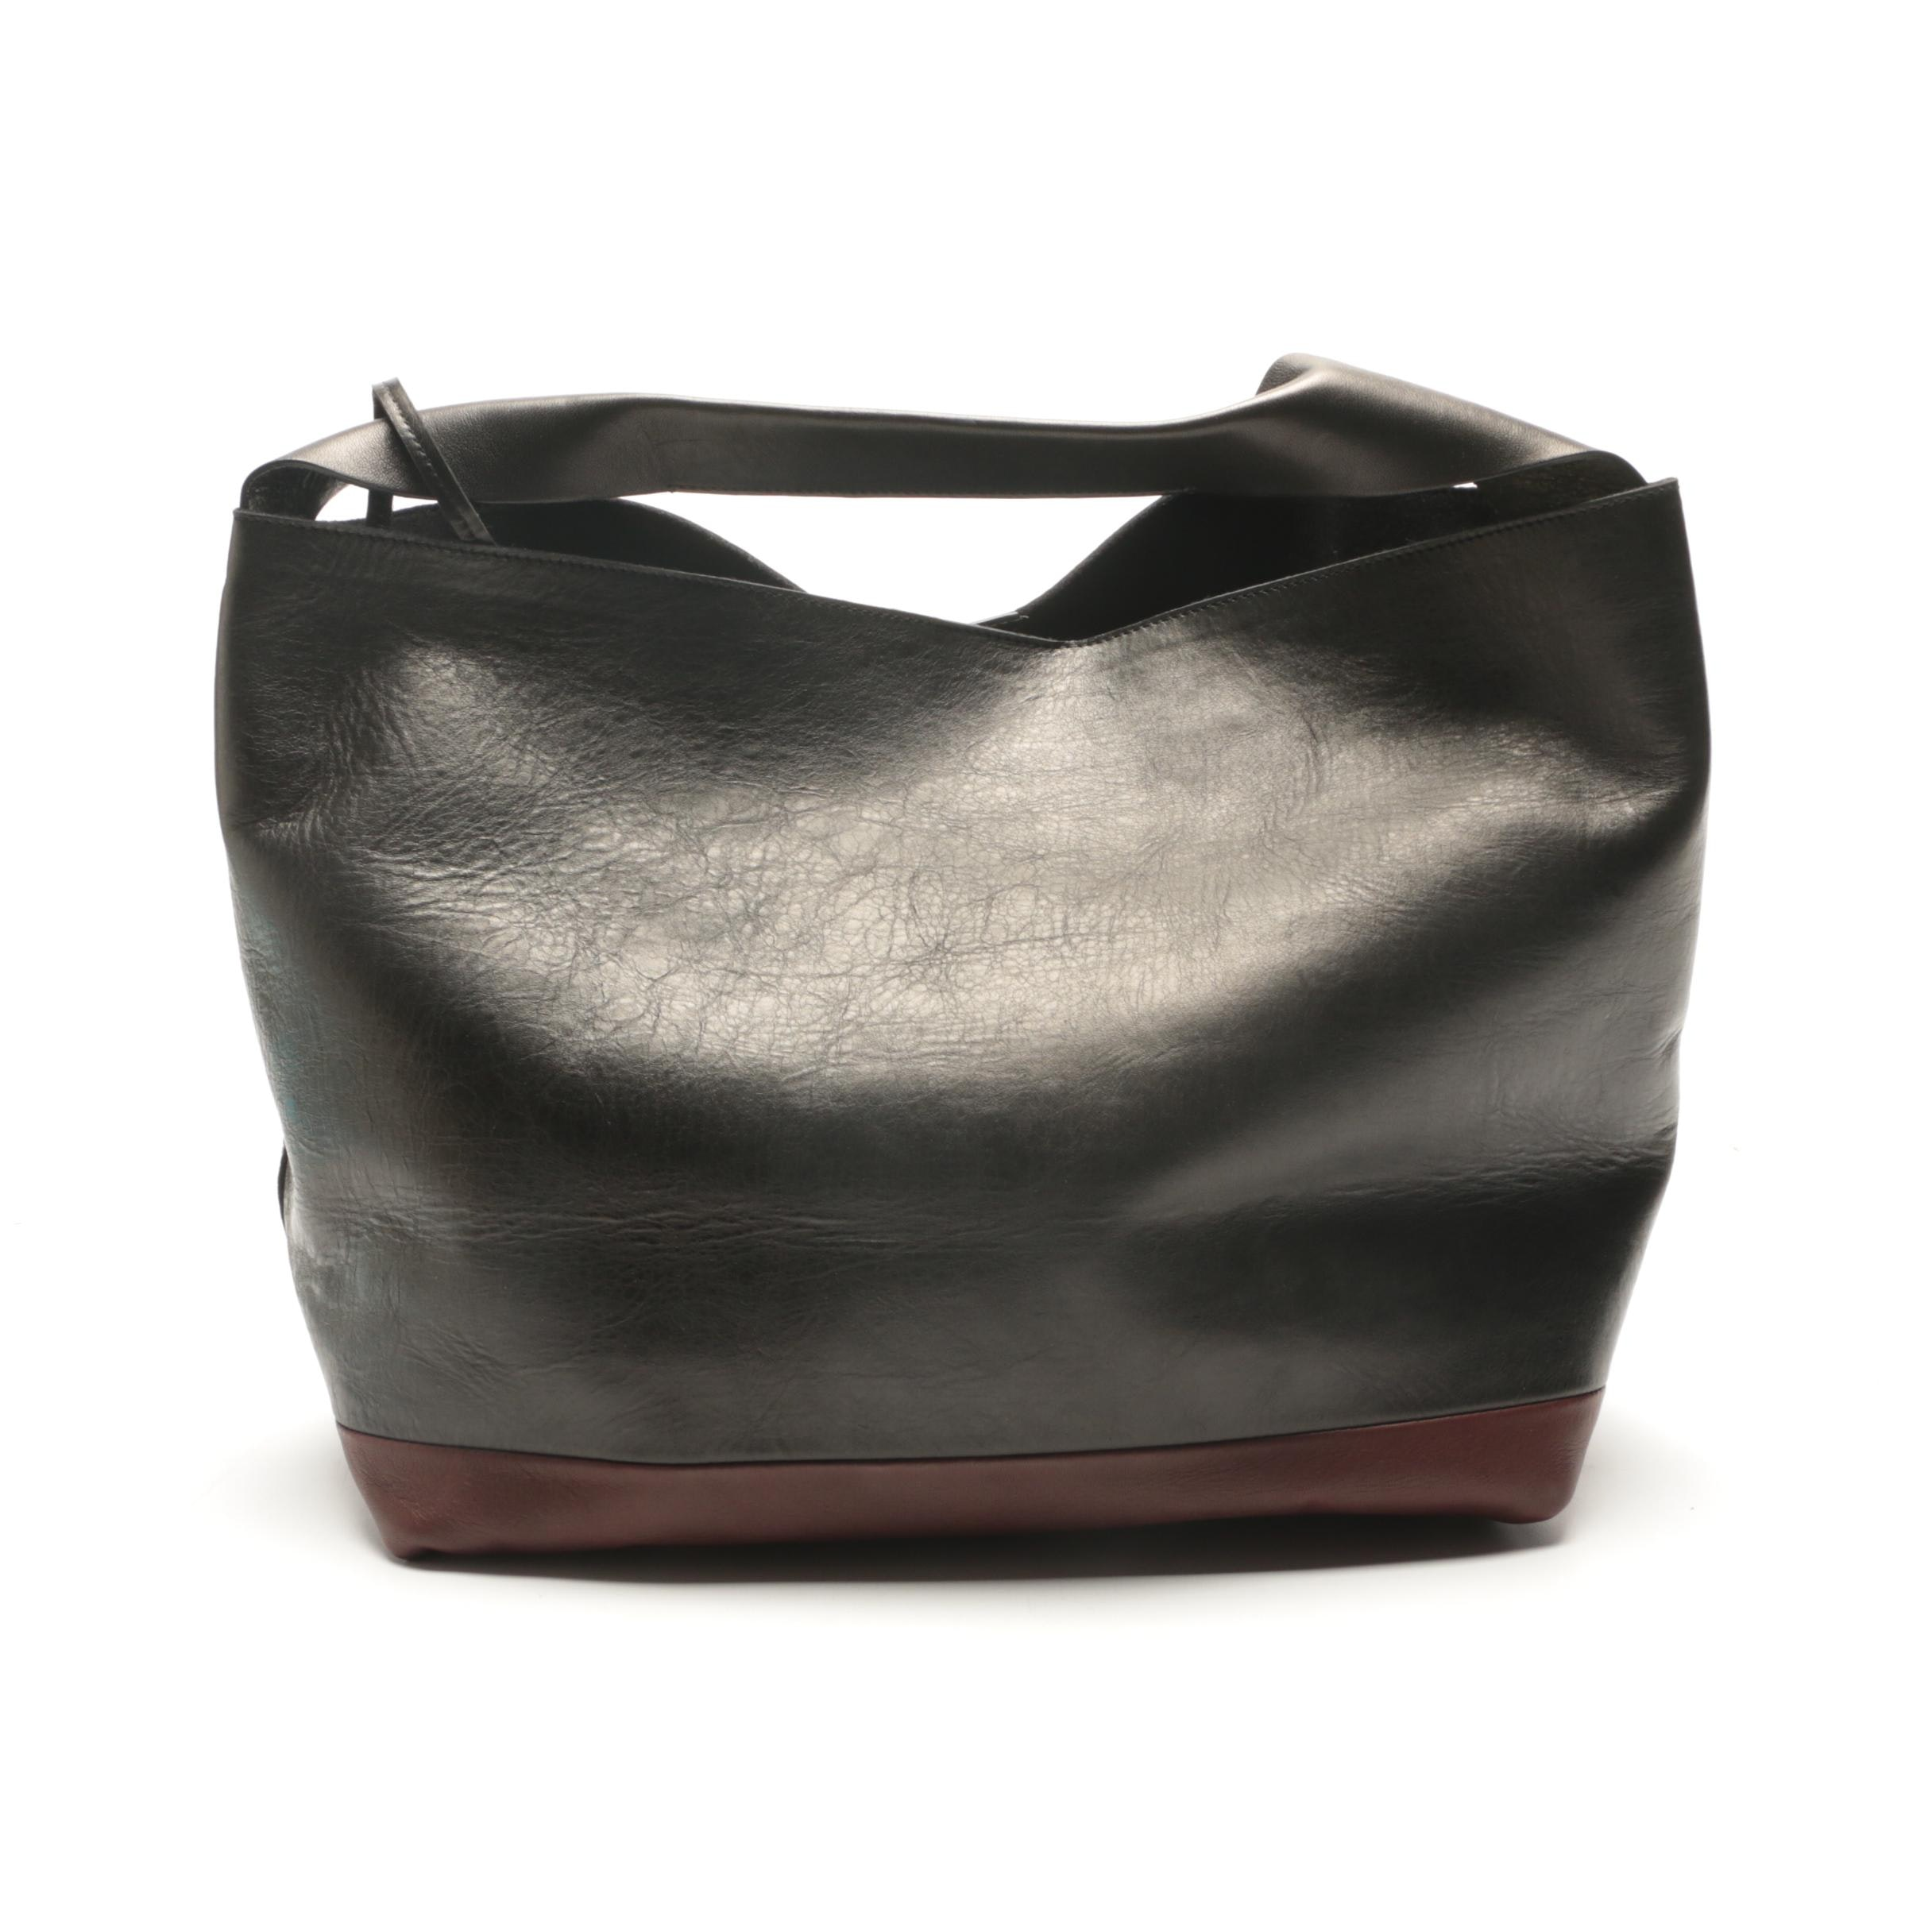 Marni Borsa Sacca Leather Shoulder Bag